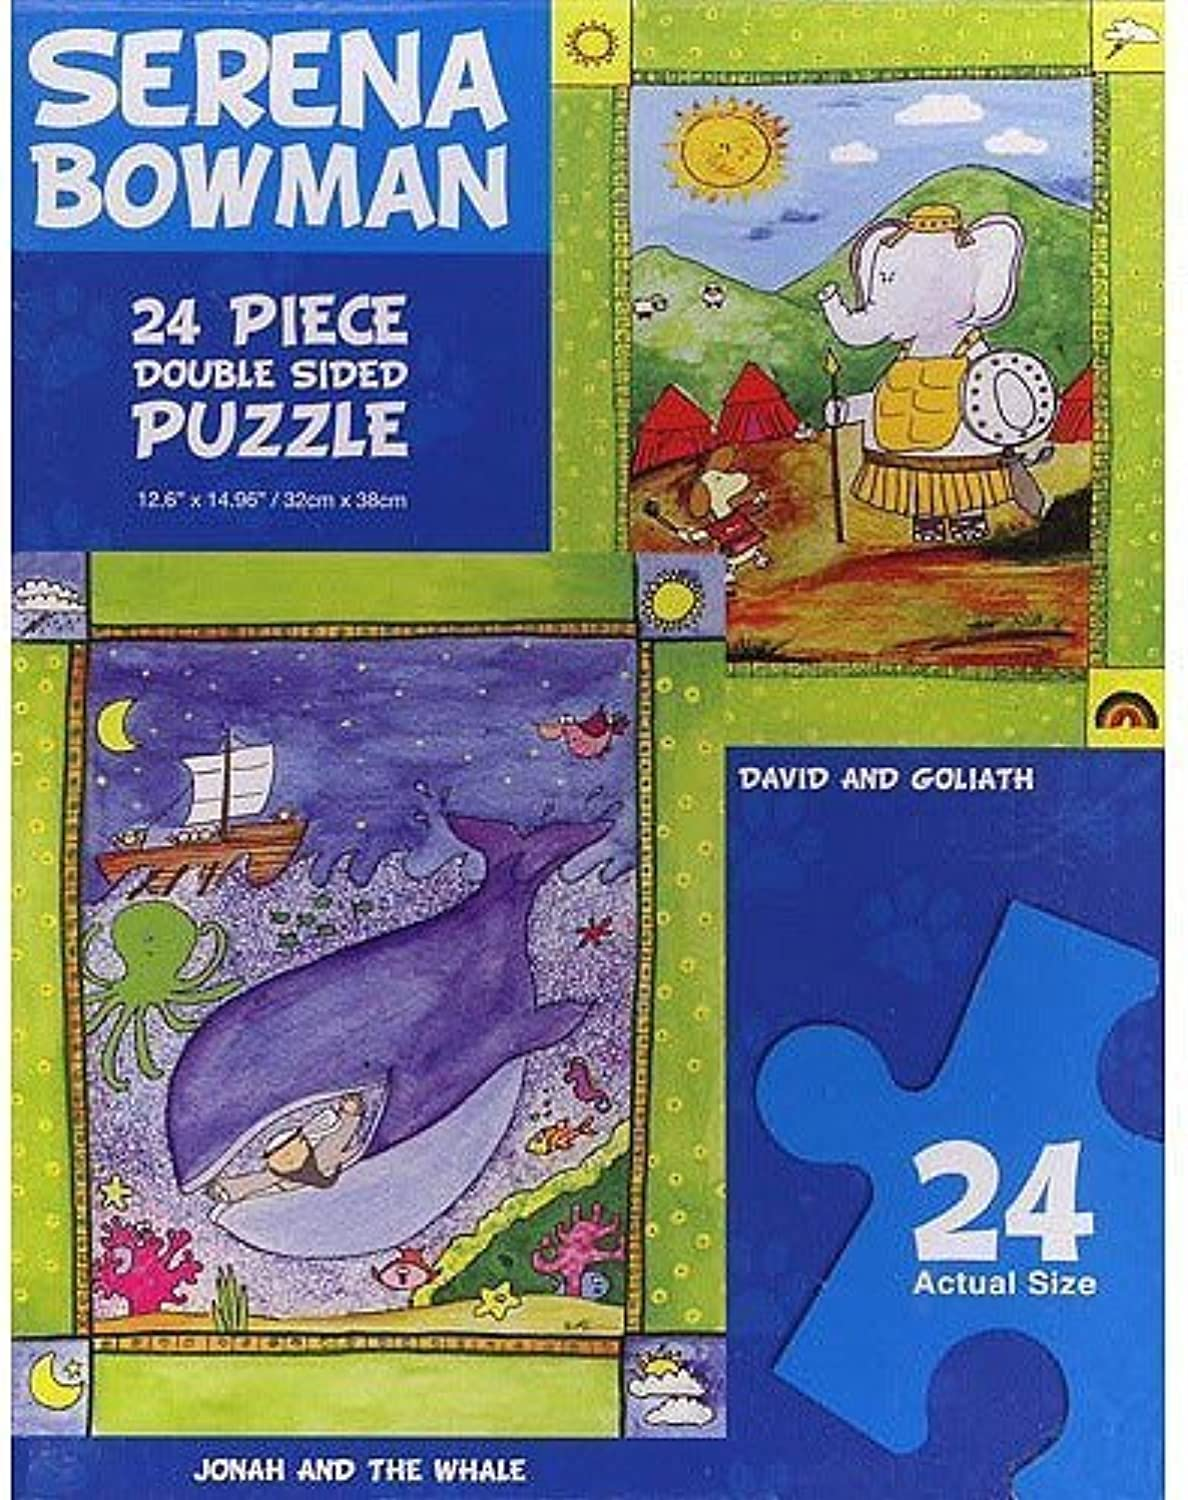 Serena Bowman Jonah and the Whale and David and Goliath Double Sided Puzzle by Painted Planet Licensing Group